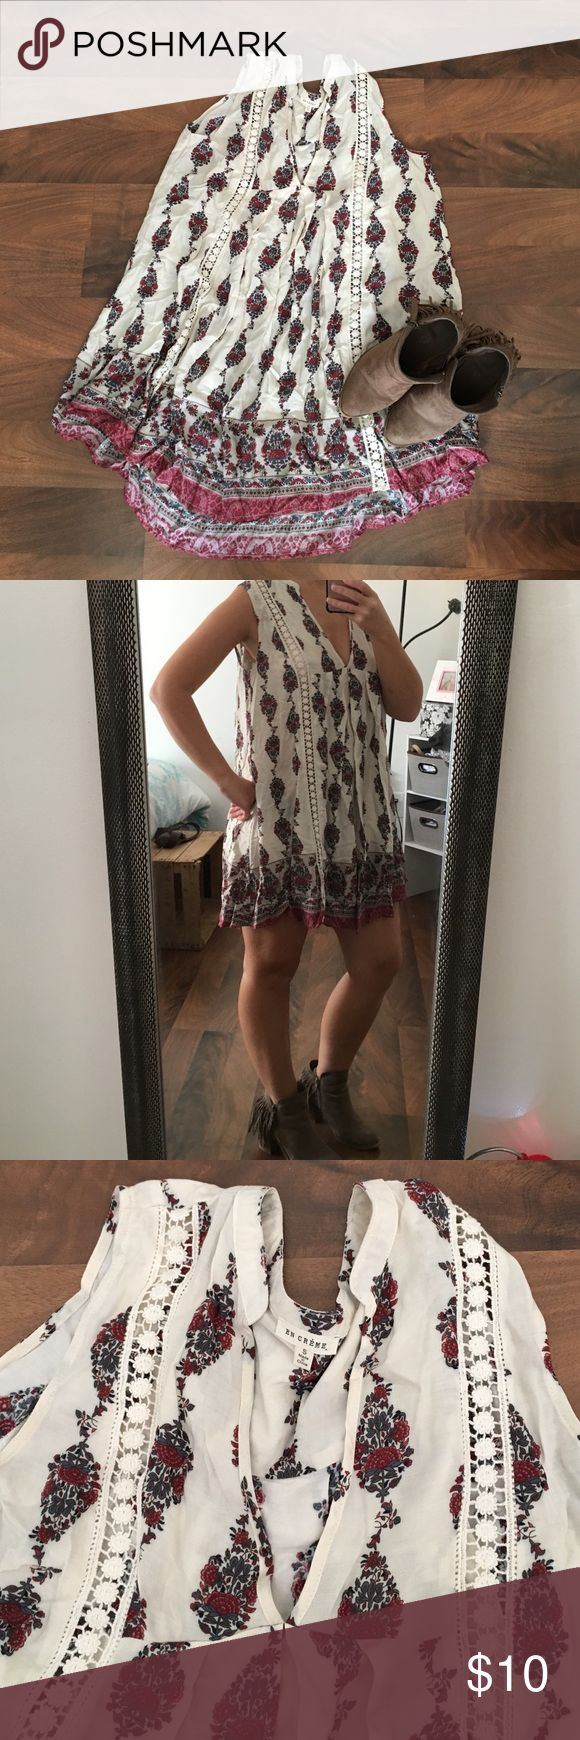 Fall dress from the Mint Julep Boutique! This is a cute flowy dress great from Fall and Spring. Never worn, new without tags. From the online boutique, The Mint Julep Boutique! Dresses Mini